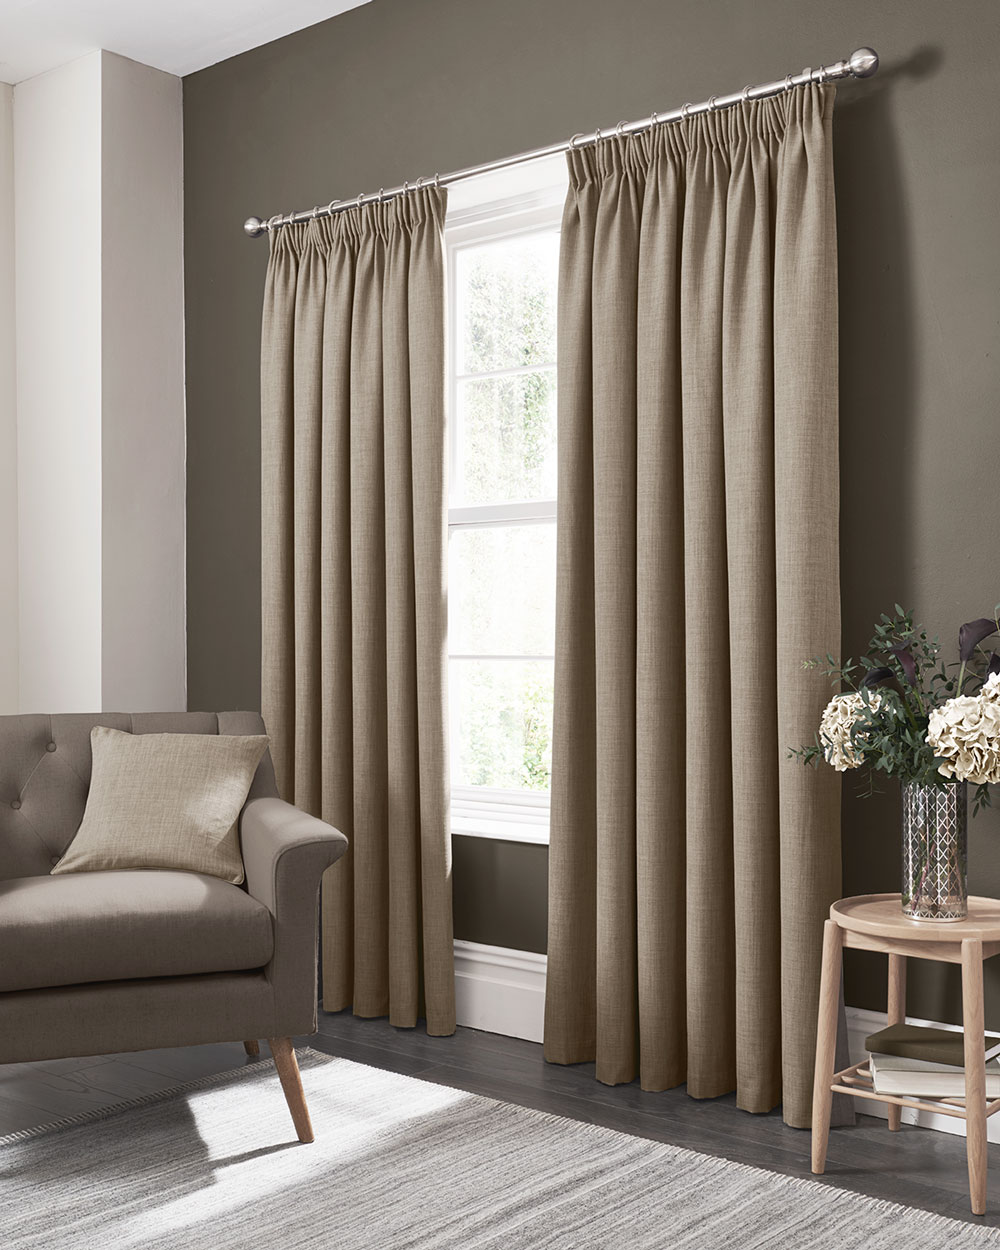 Studio G Elba Pencil Pleat Curtains  Linen Ready Made Curtains - Product code: M1105/03/66X9